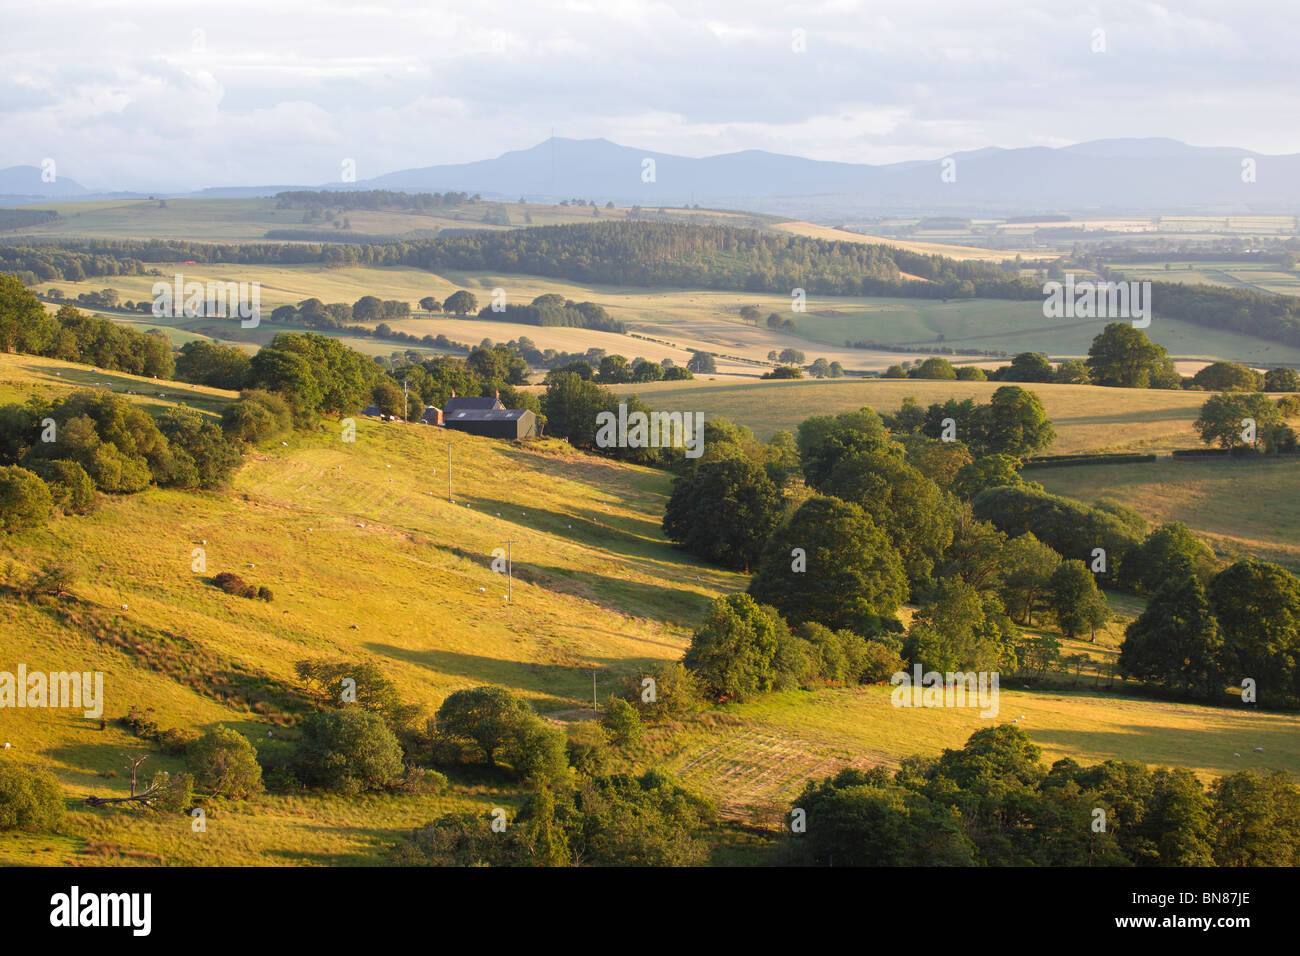 The Eden Valley in Cumbria, near Ainstable looking towards The Lake District on a summers evening. - Stock Image